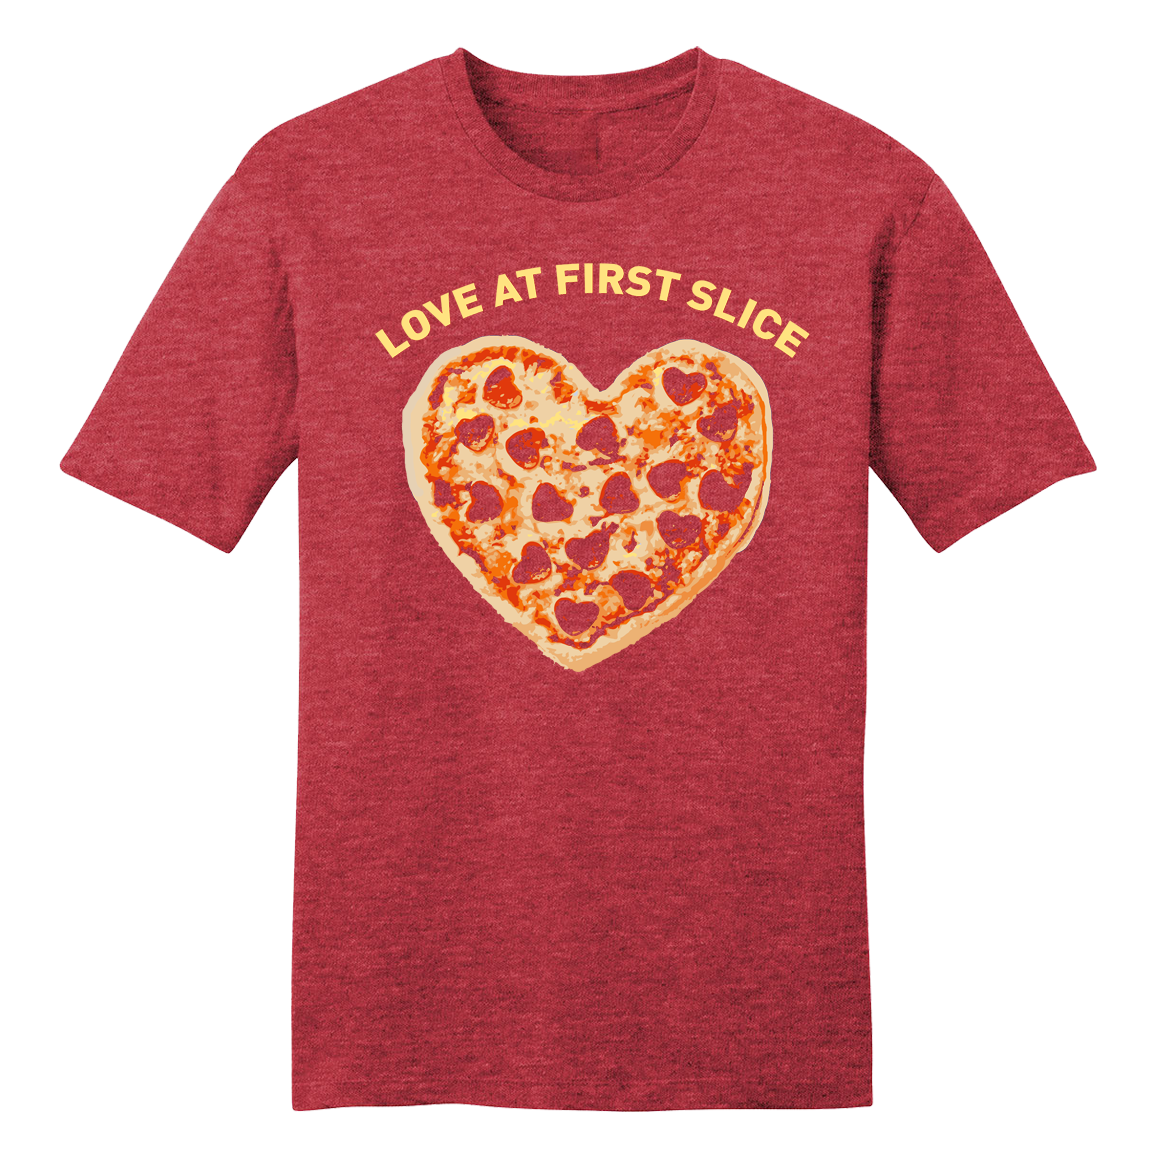 Love at First Slice tee